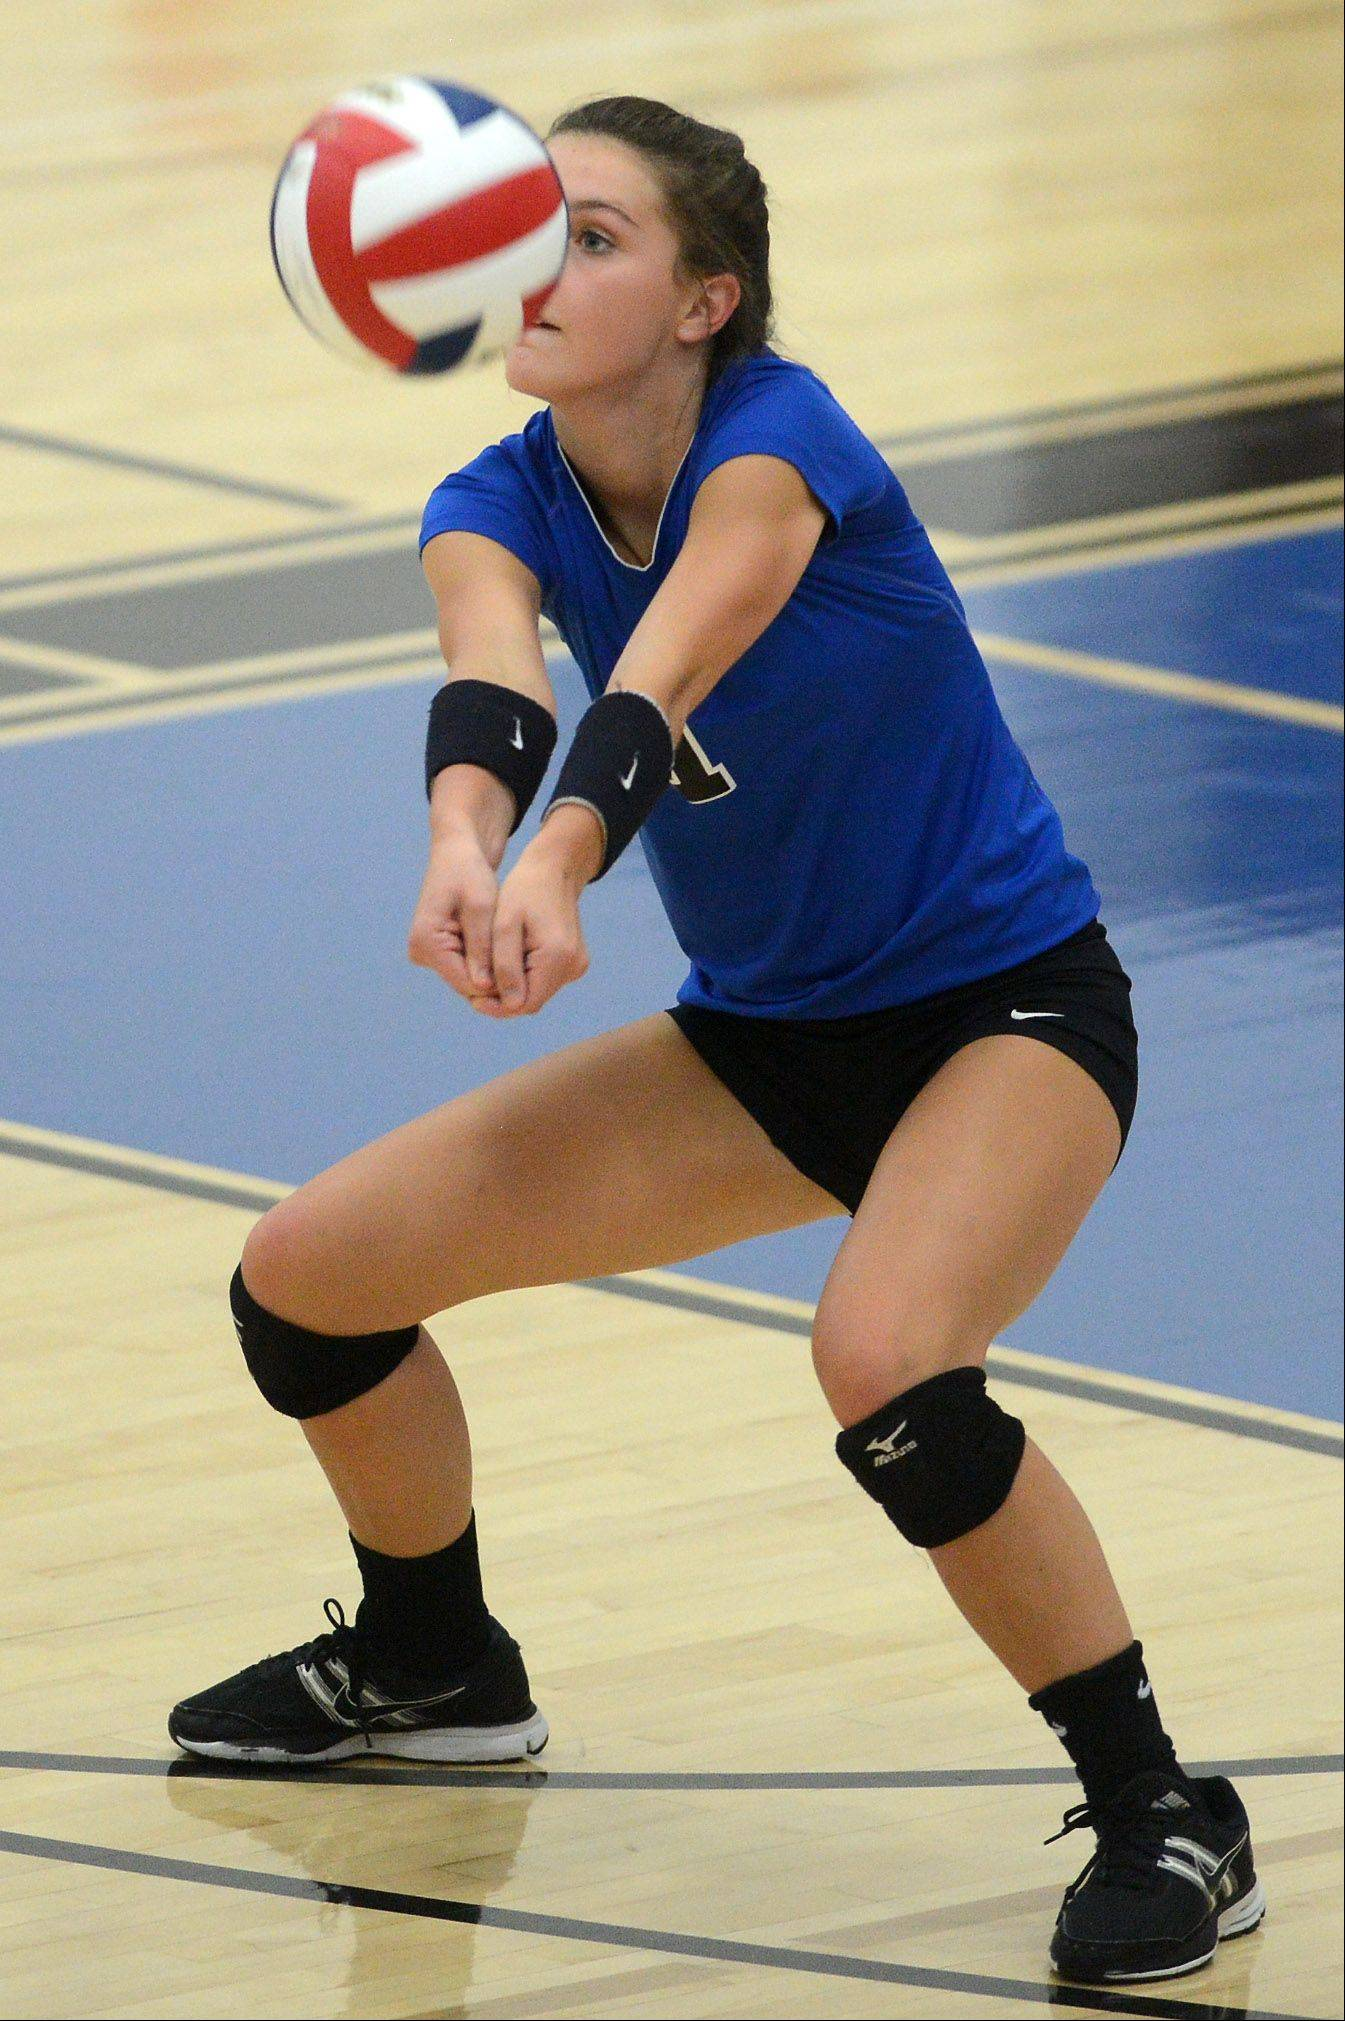 St. Charles North's Sam Lappin returns serve against South Elgin during Thursday's game in St. Charles.